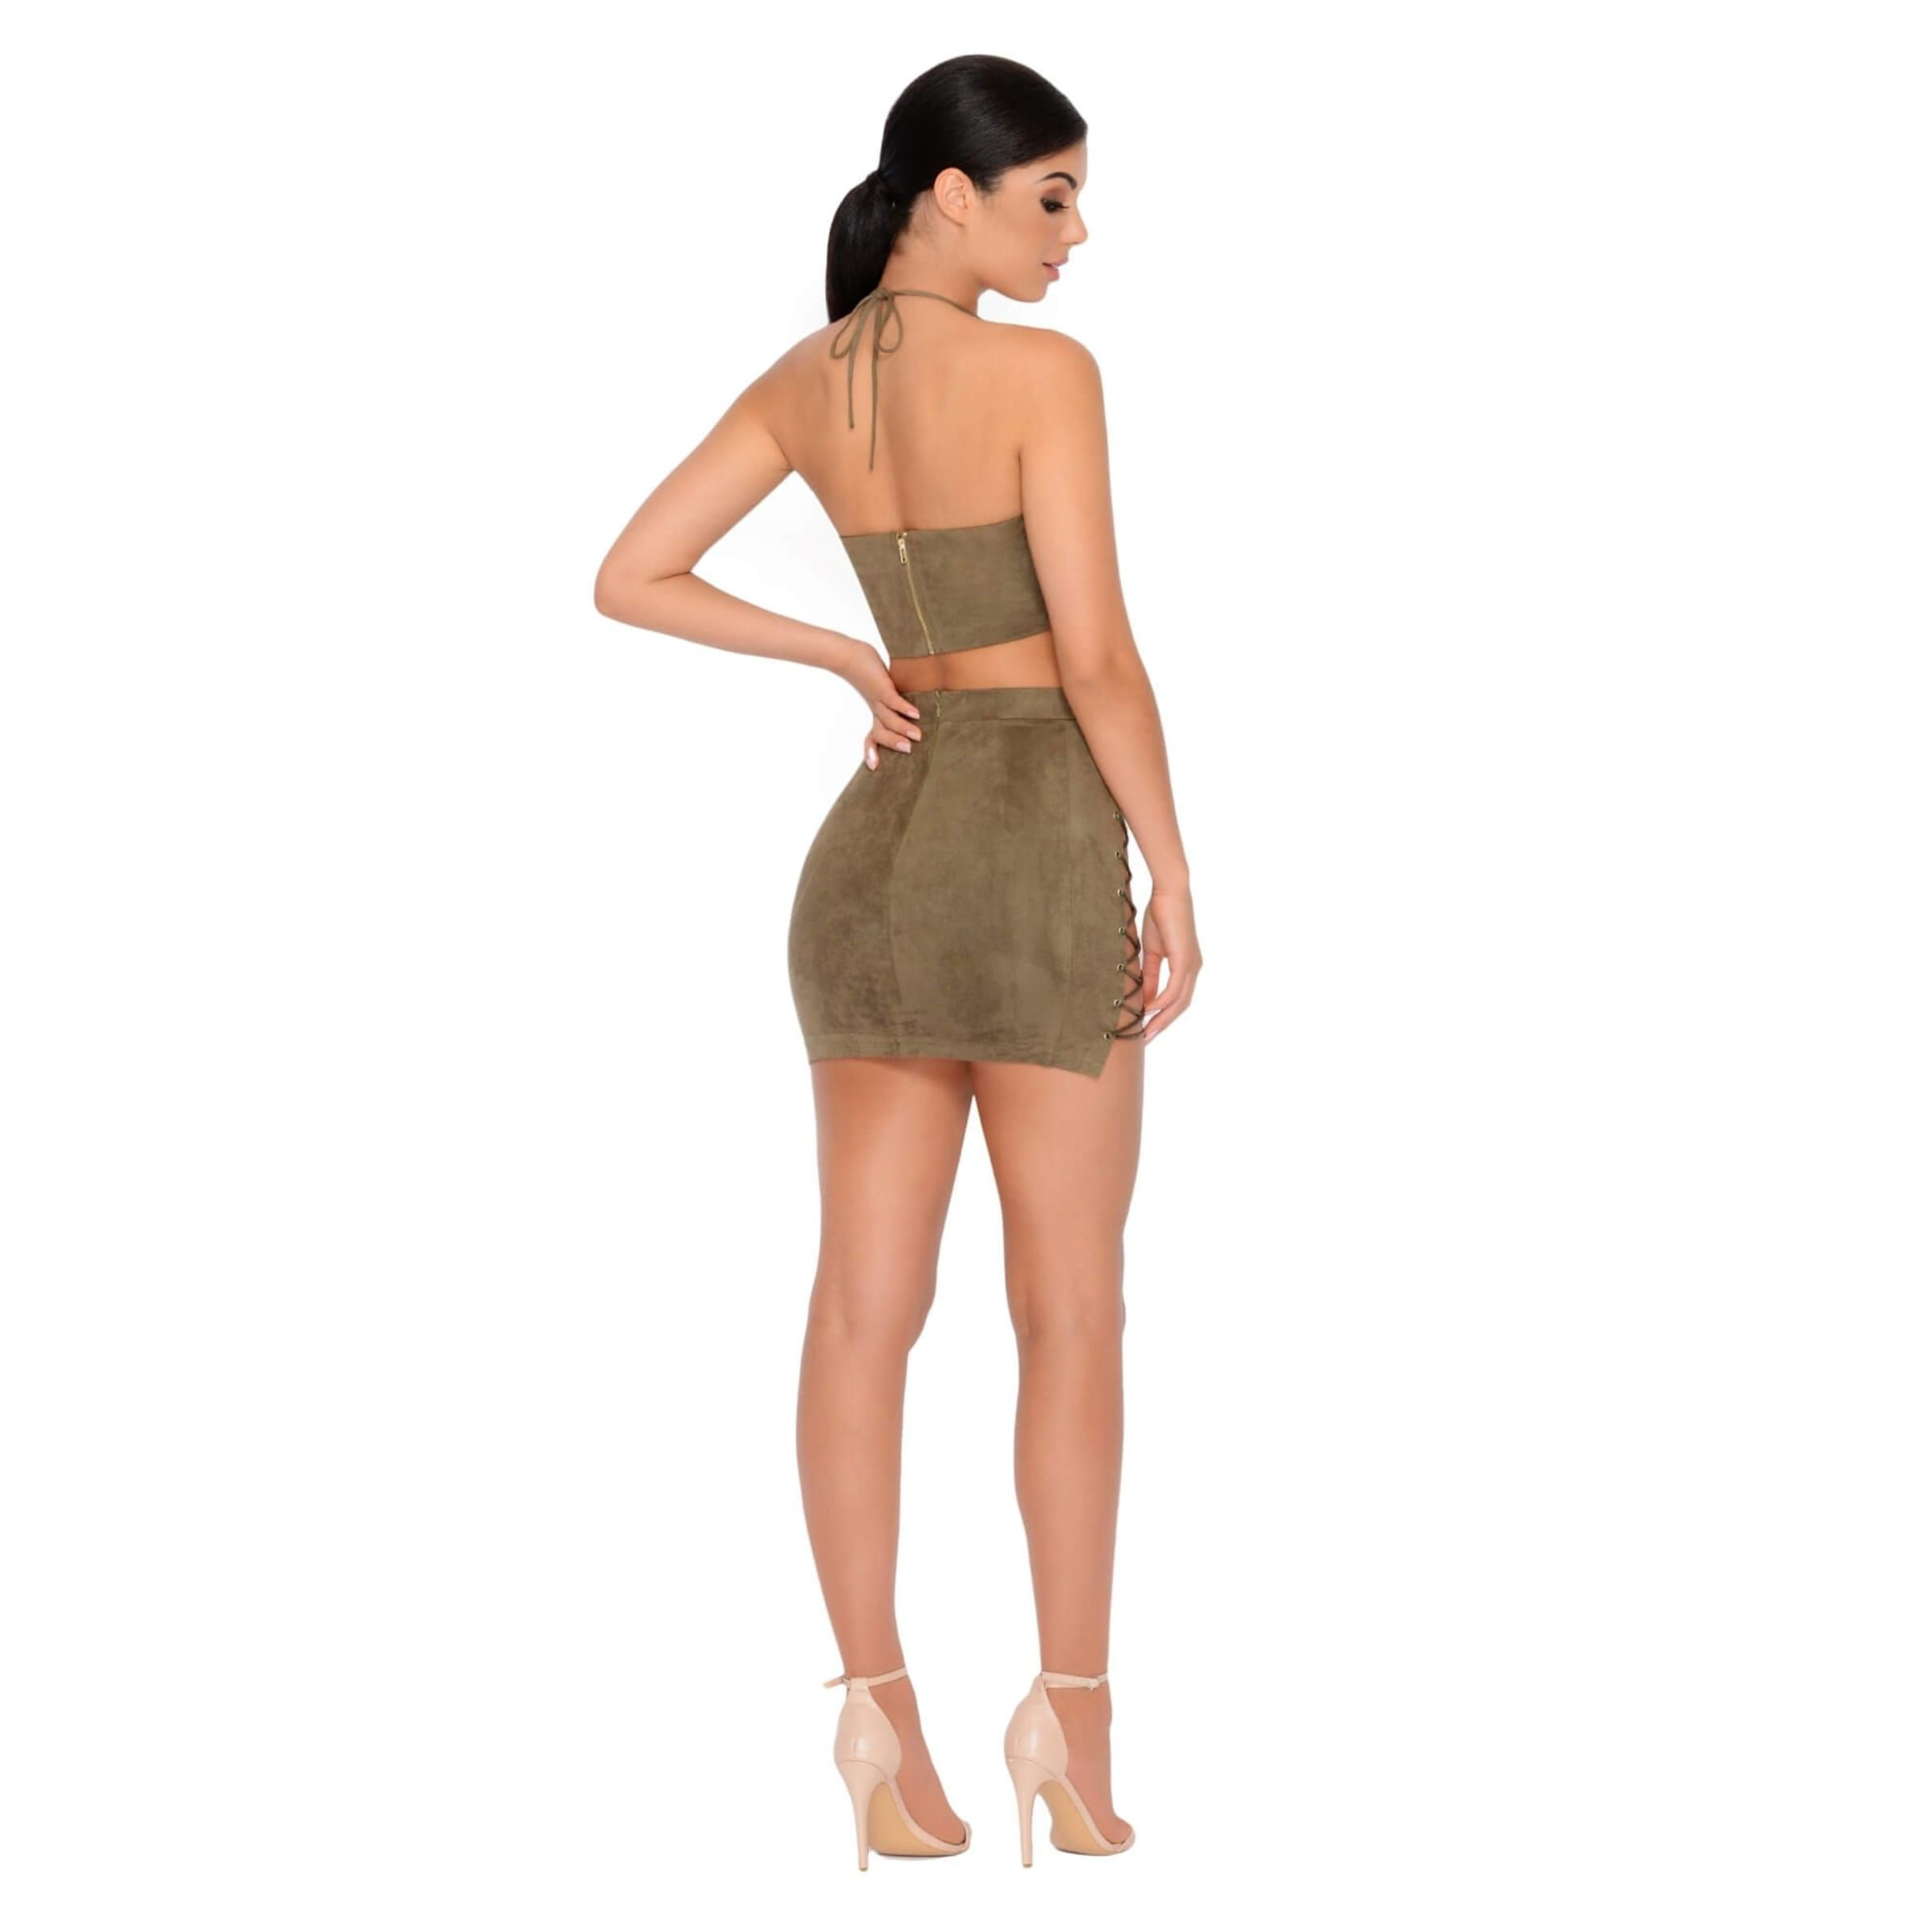 ab67c0e4d83 Straight Laced Suede Tie Up Two Piece in Khaki | Straight Crop Top ...